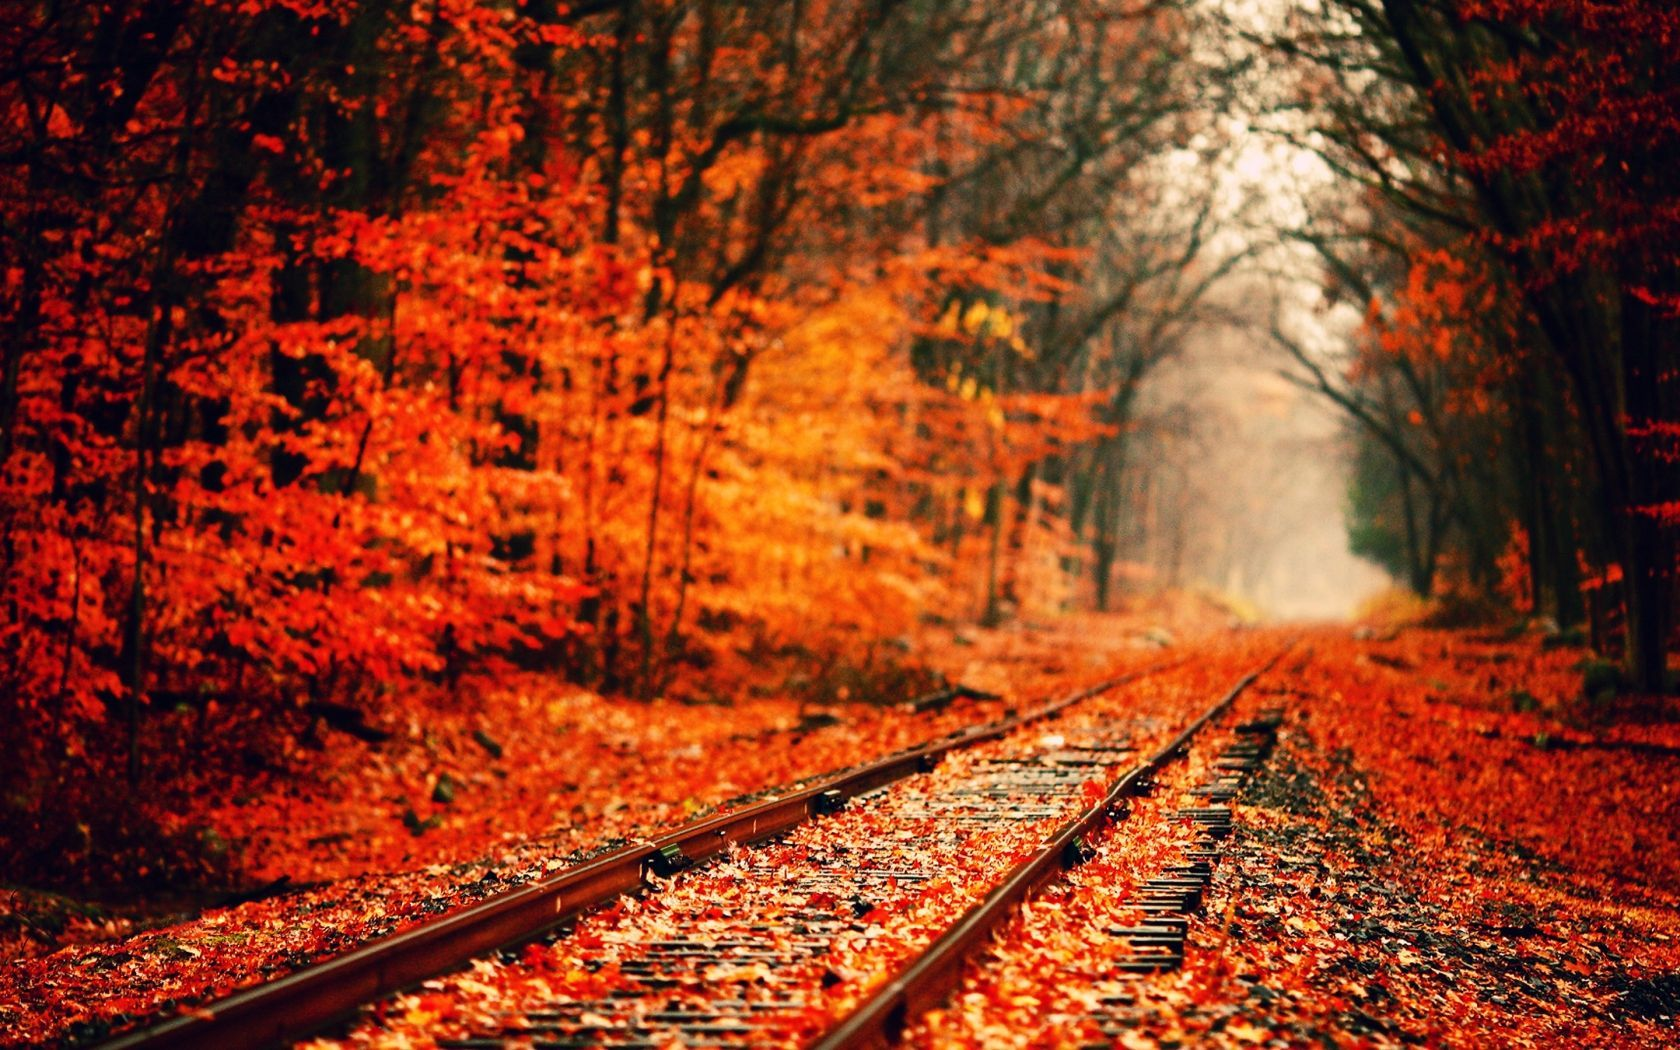 wallpaper Fall Pictures – How to Use Wallpaper Photos to Replace Windows Vista Or Home Interior Wallpaper